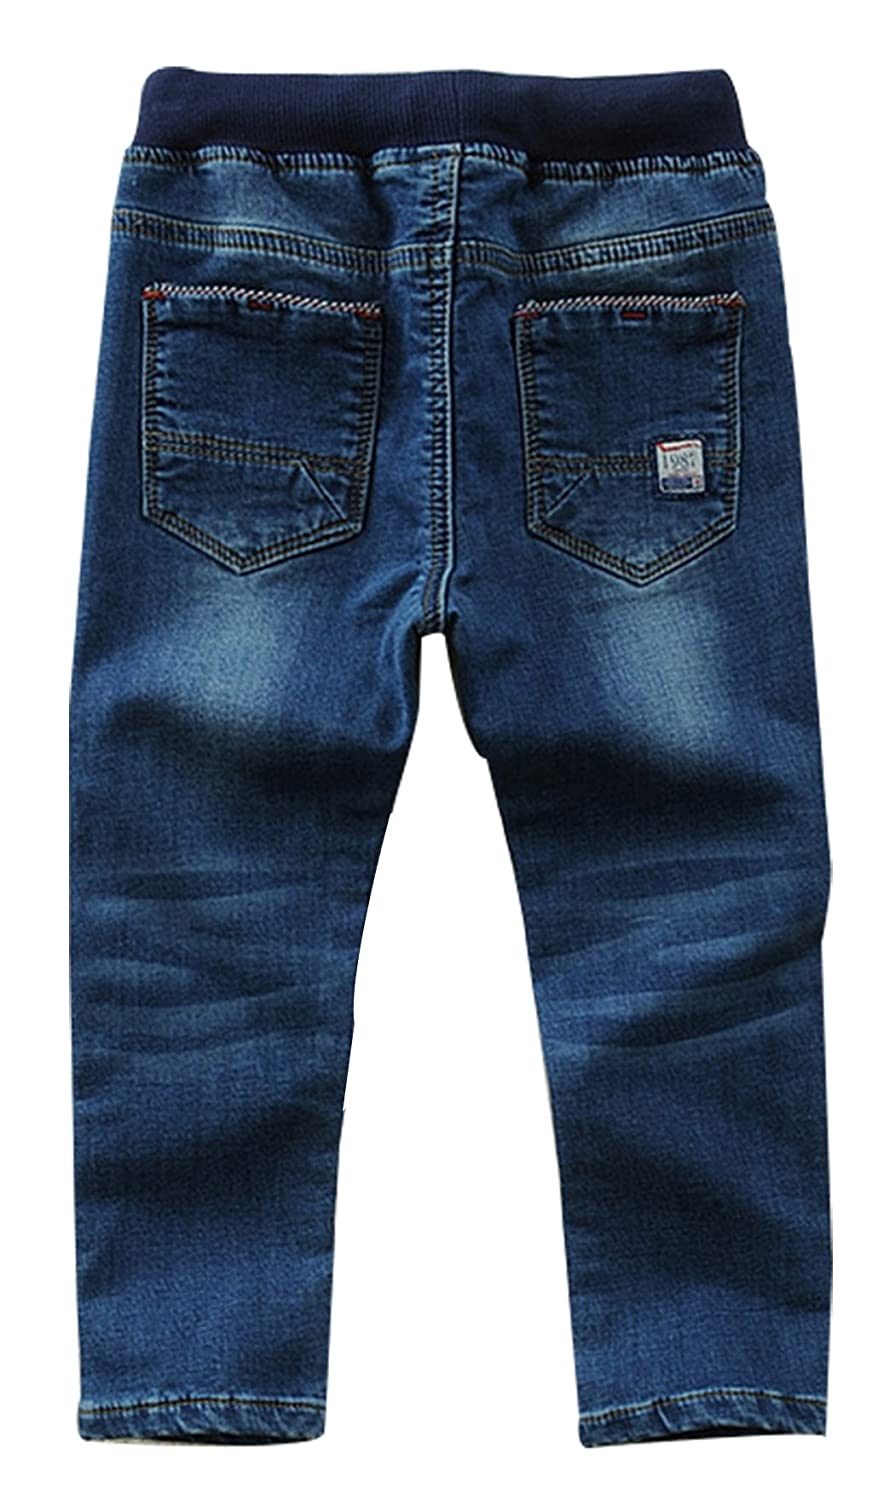 d352aa85 Amazon.com: Toddler Kid Boy Elastic Mid Waist Washed Full Length Straight  Pants Denim Jeans: Clothing